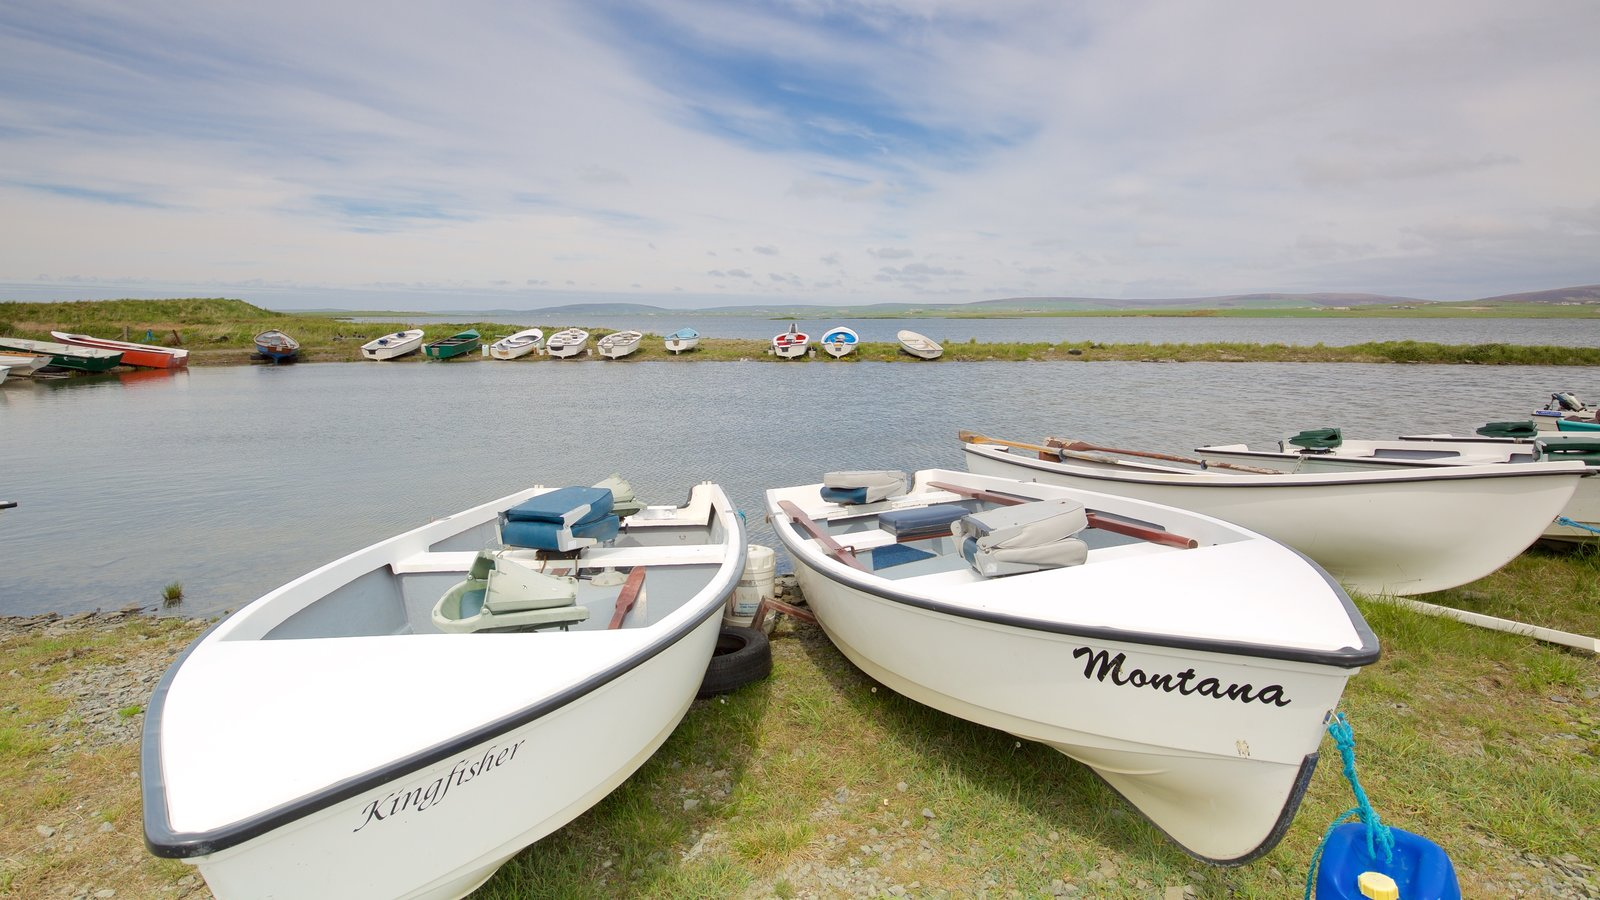 Stromness which includes boating and a lake or waterhole